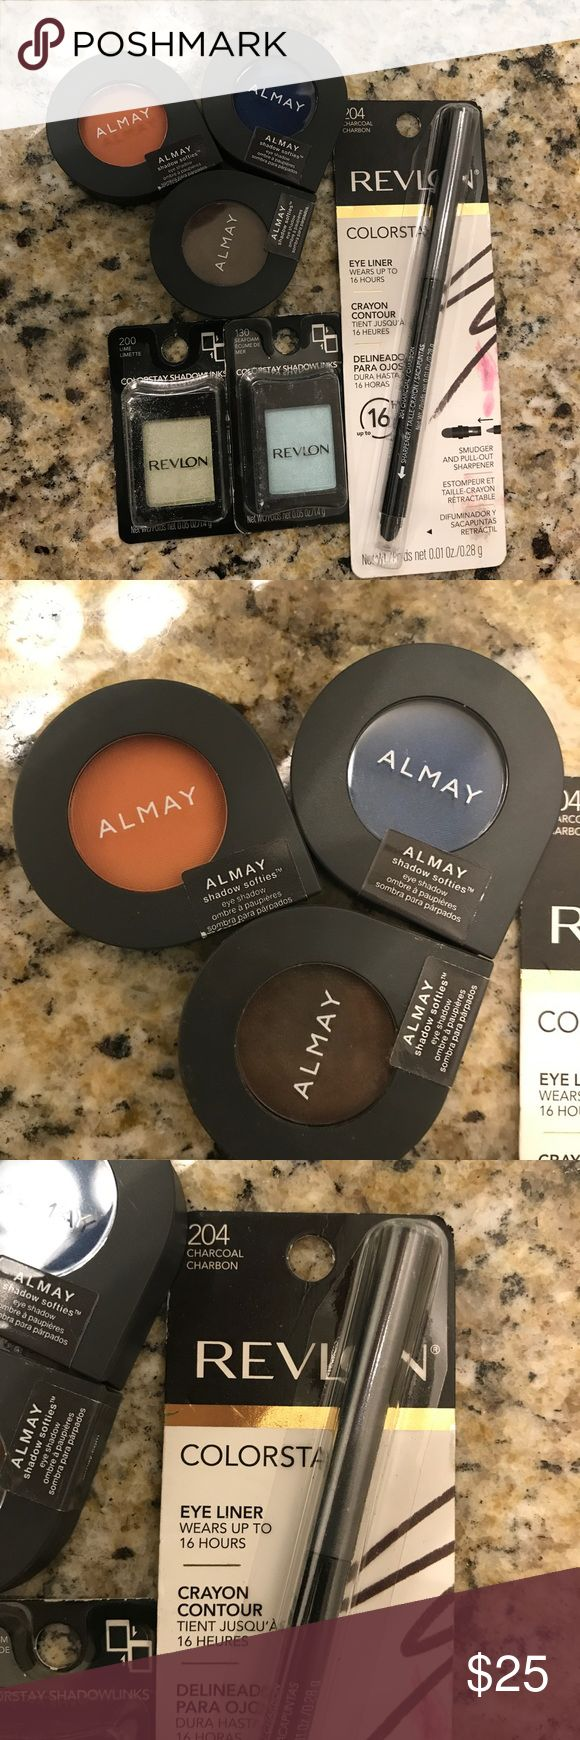 Revlon/Almay eye bundle Revlon/Almay eye bundle. All new, never opened or swatched. Almay shadows are peach fuzz, midnight sky, and hot fudge. All other shades visible on packages. Almay Makeup Eyeshadow